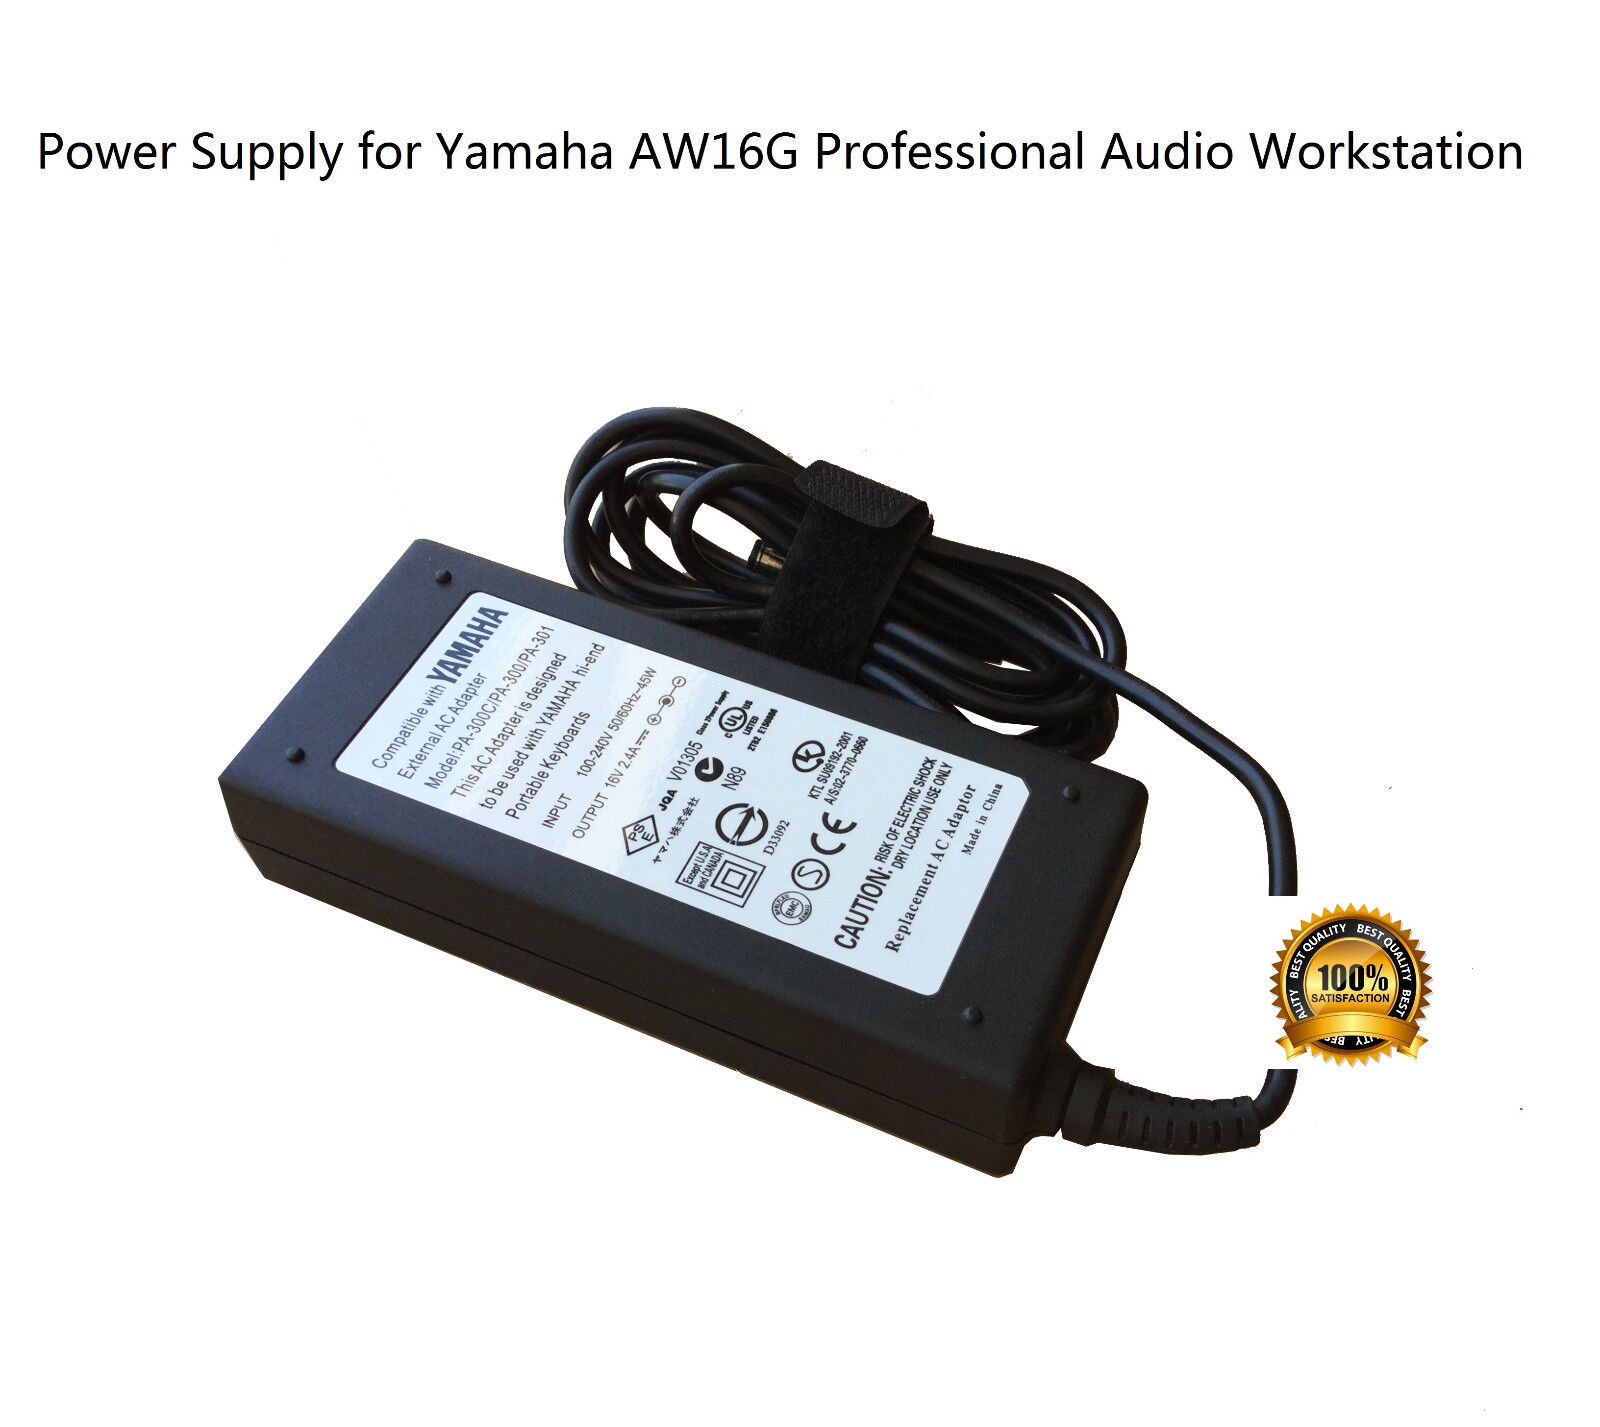 AC Adapter Power Supply for Yamaha AW16G Professional Audio Workstation AW-16G